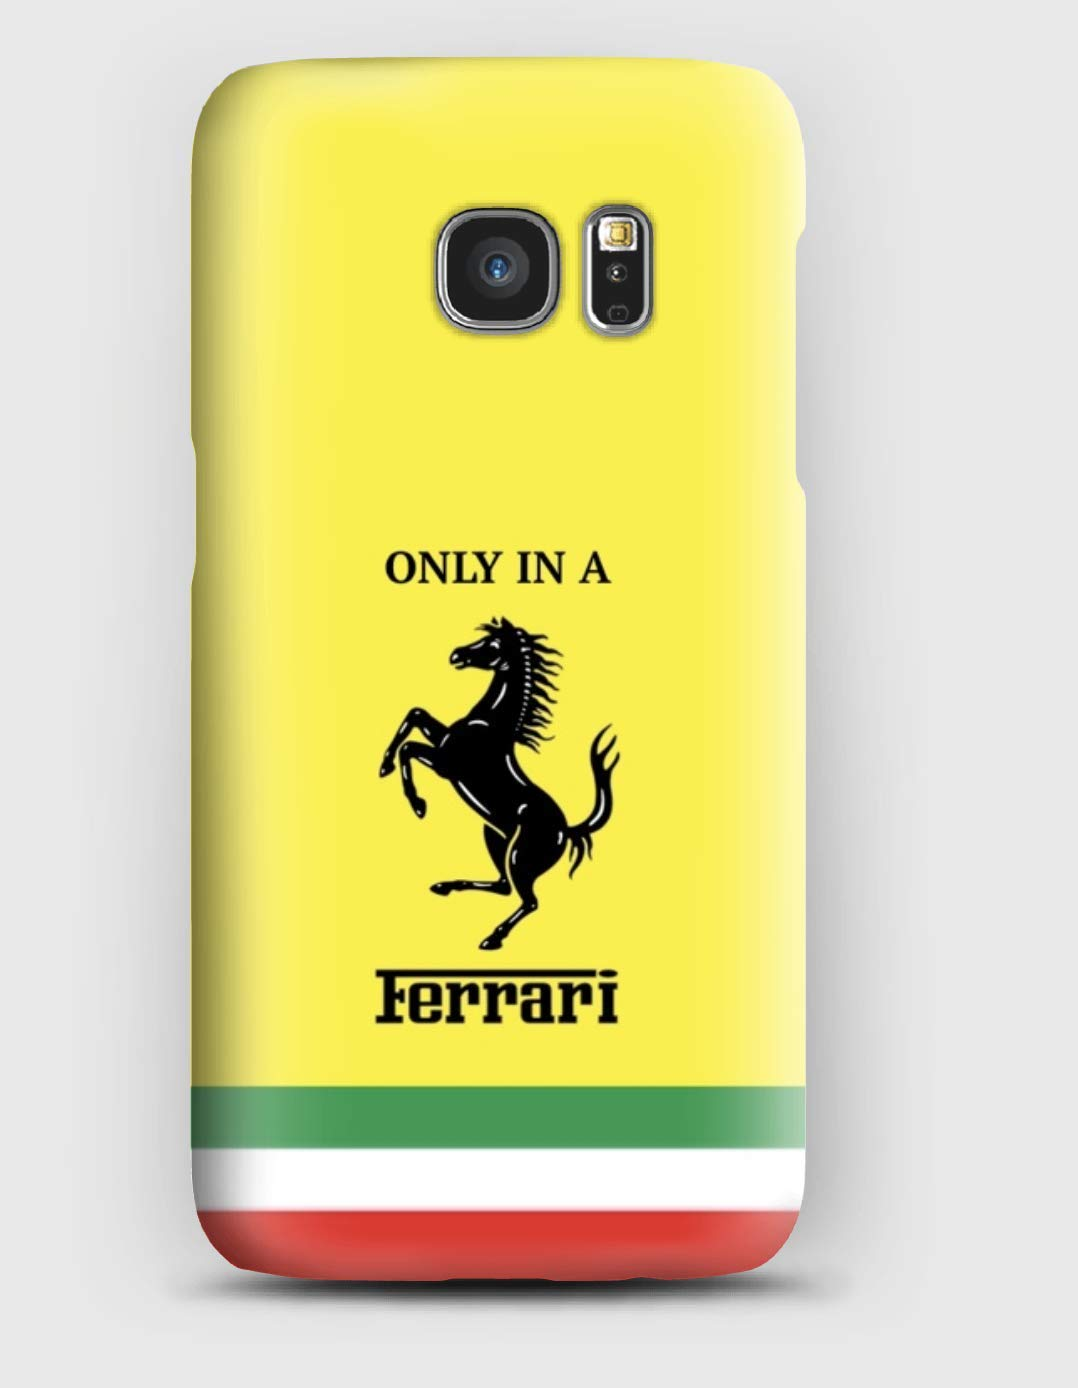 Only in a Ferrari, Cover Samsung S5, S6, S7, S8, A3, A5, A8, J3,J5, Note 5,8,9